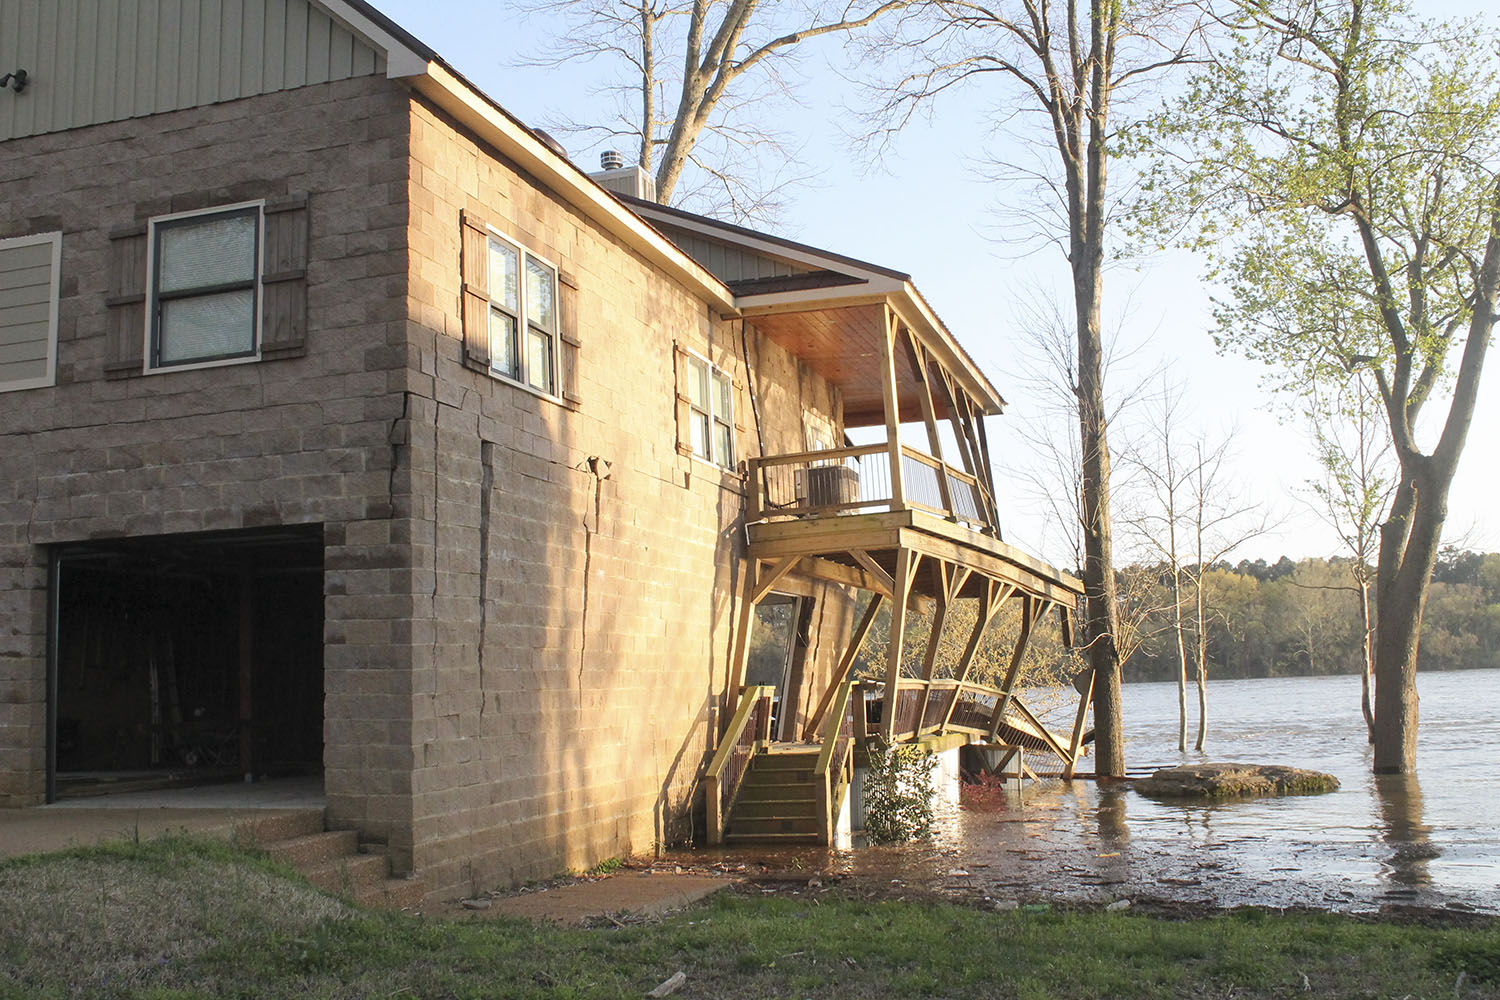 The U.S. Coast Guard said a house on Arnold Drive in Savannah, Tenn., received significant damage after 14 empty barges broke away from the mv. Roger L. Knight, which had been chartered by Inland Marine Service. (Photo by R. Kelly Jordan, The Courier)